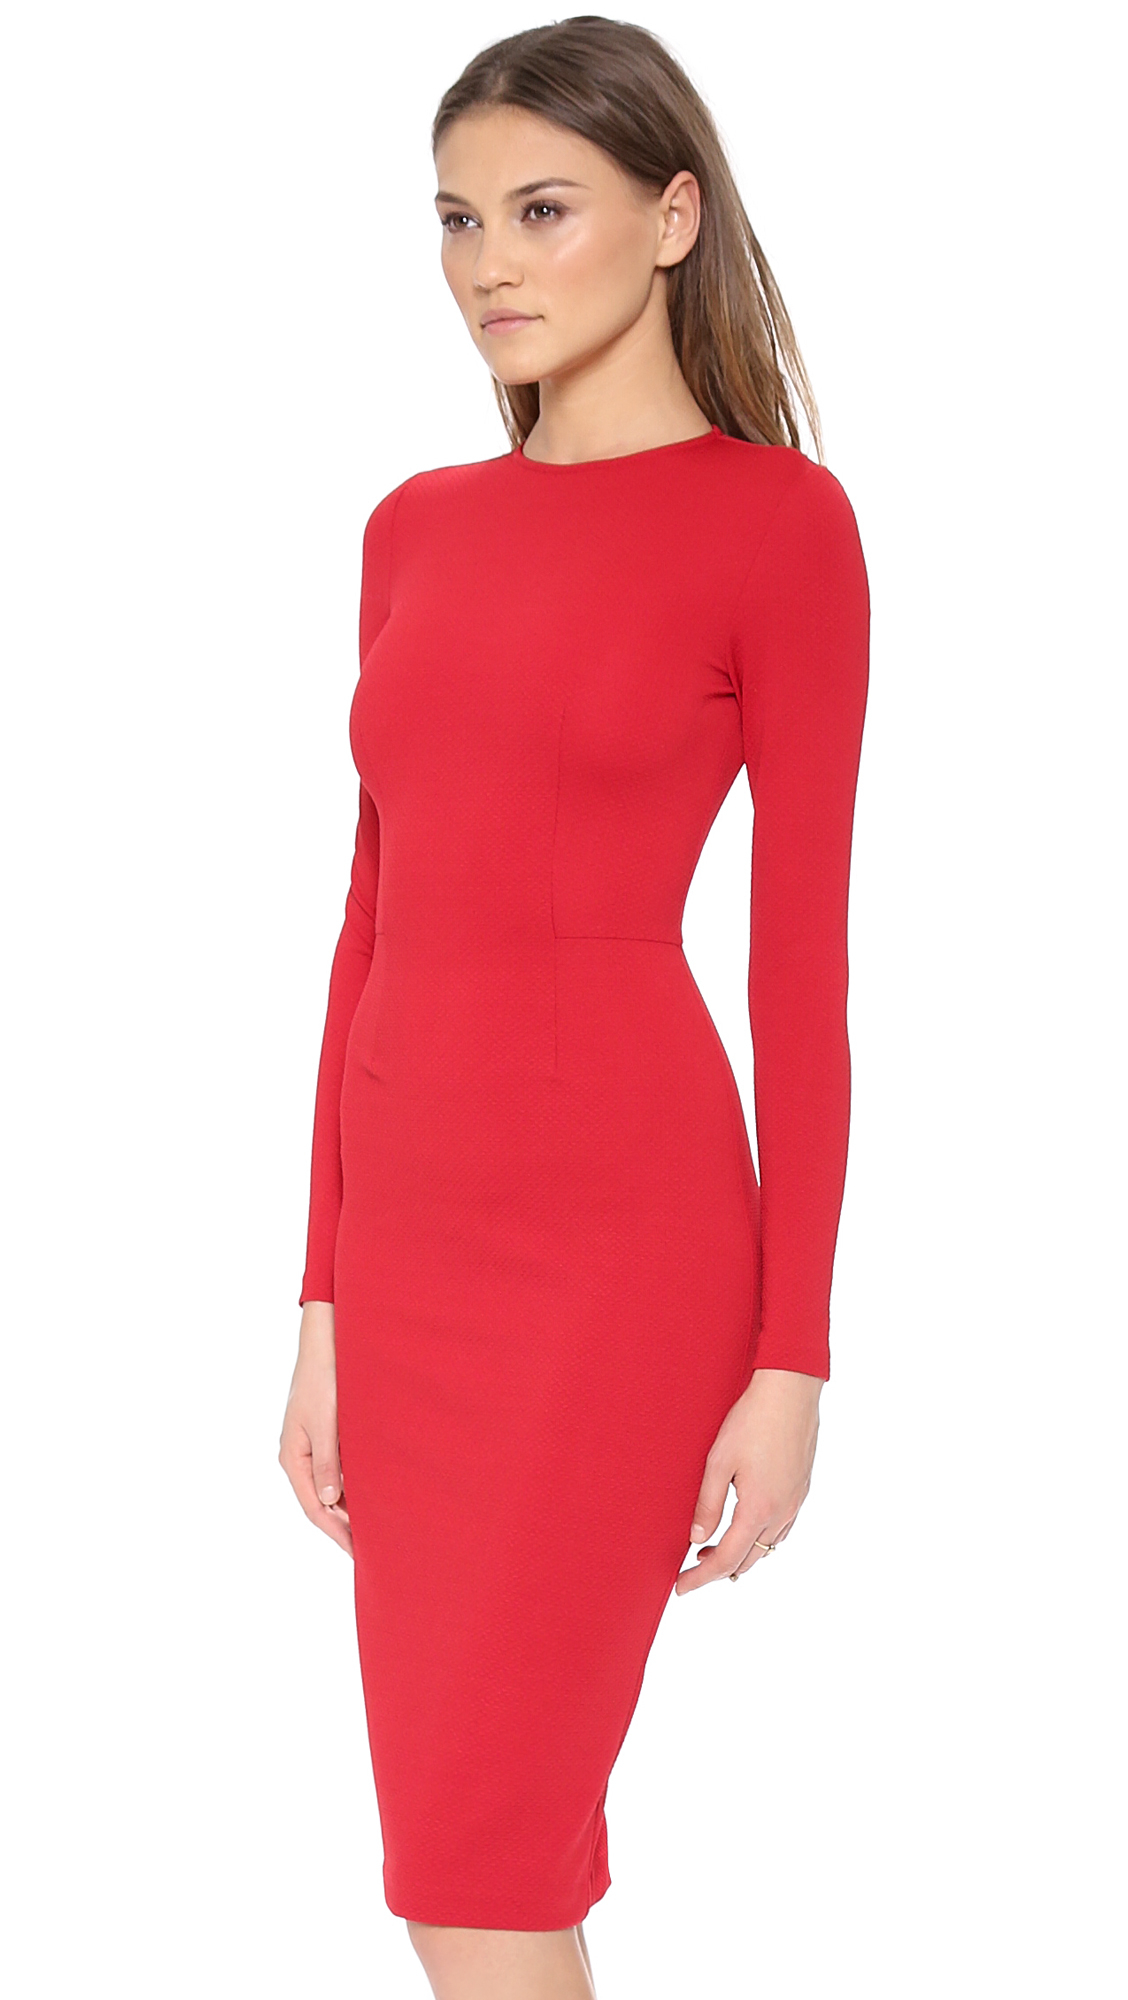 5th & mercer Long Sleeve Dress in Red | Lyst